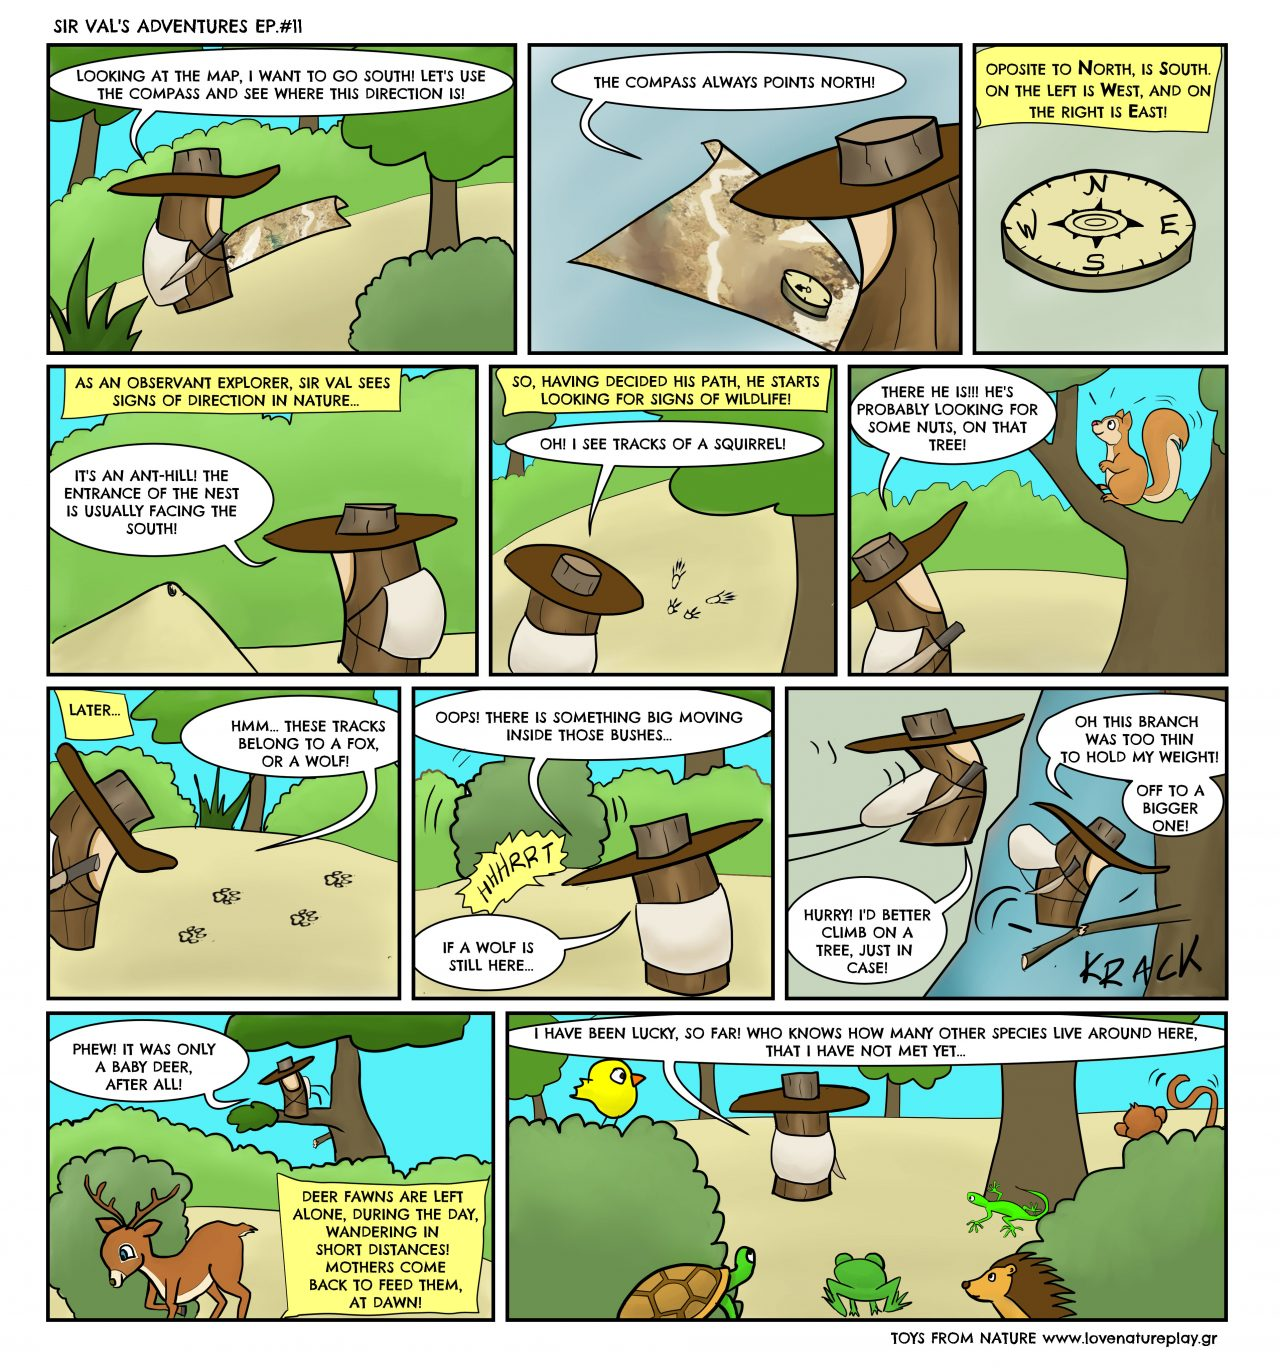 LNP's Comics - Sir Val's adventures EPISODE #11 by Love